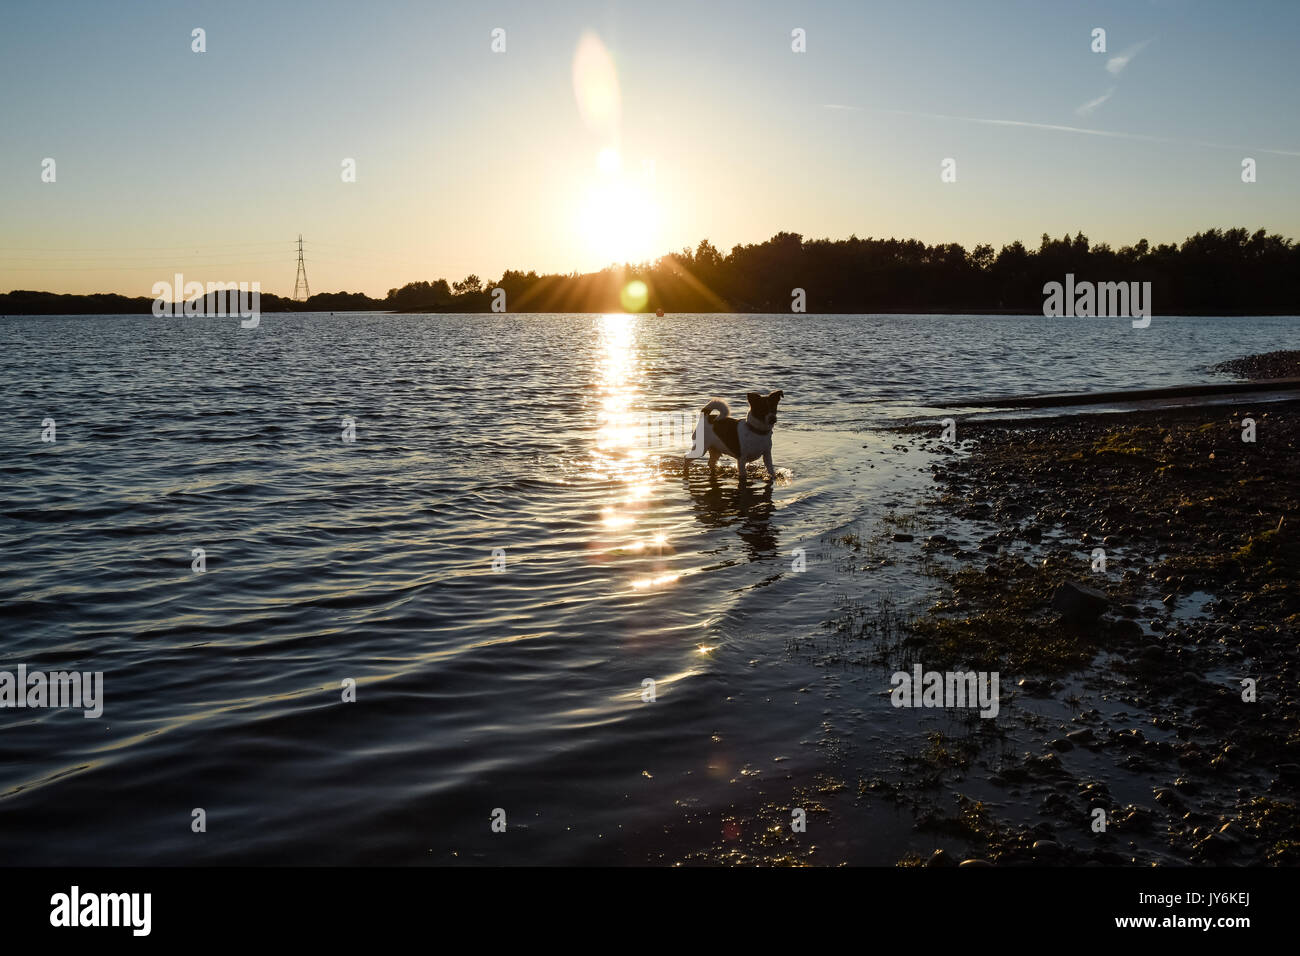 Jack Russell Terrier dog cooling off in a lake on a hot summers evening - Stock Image